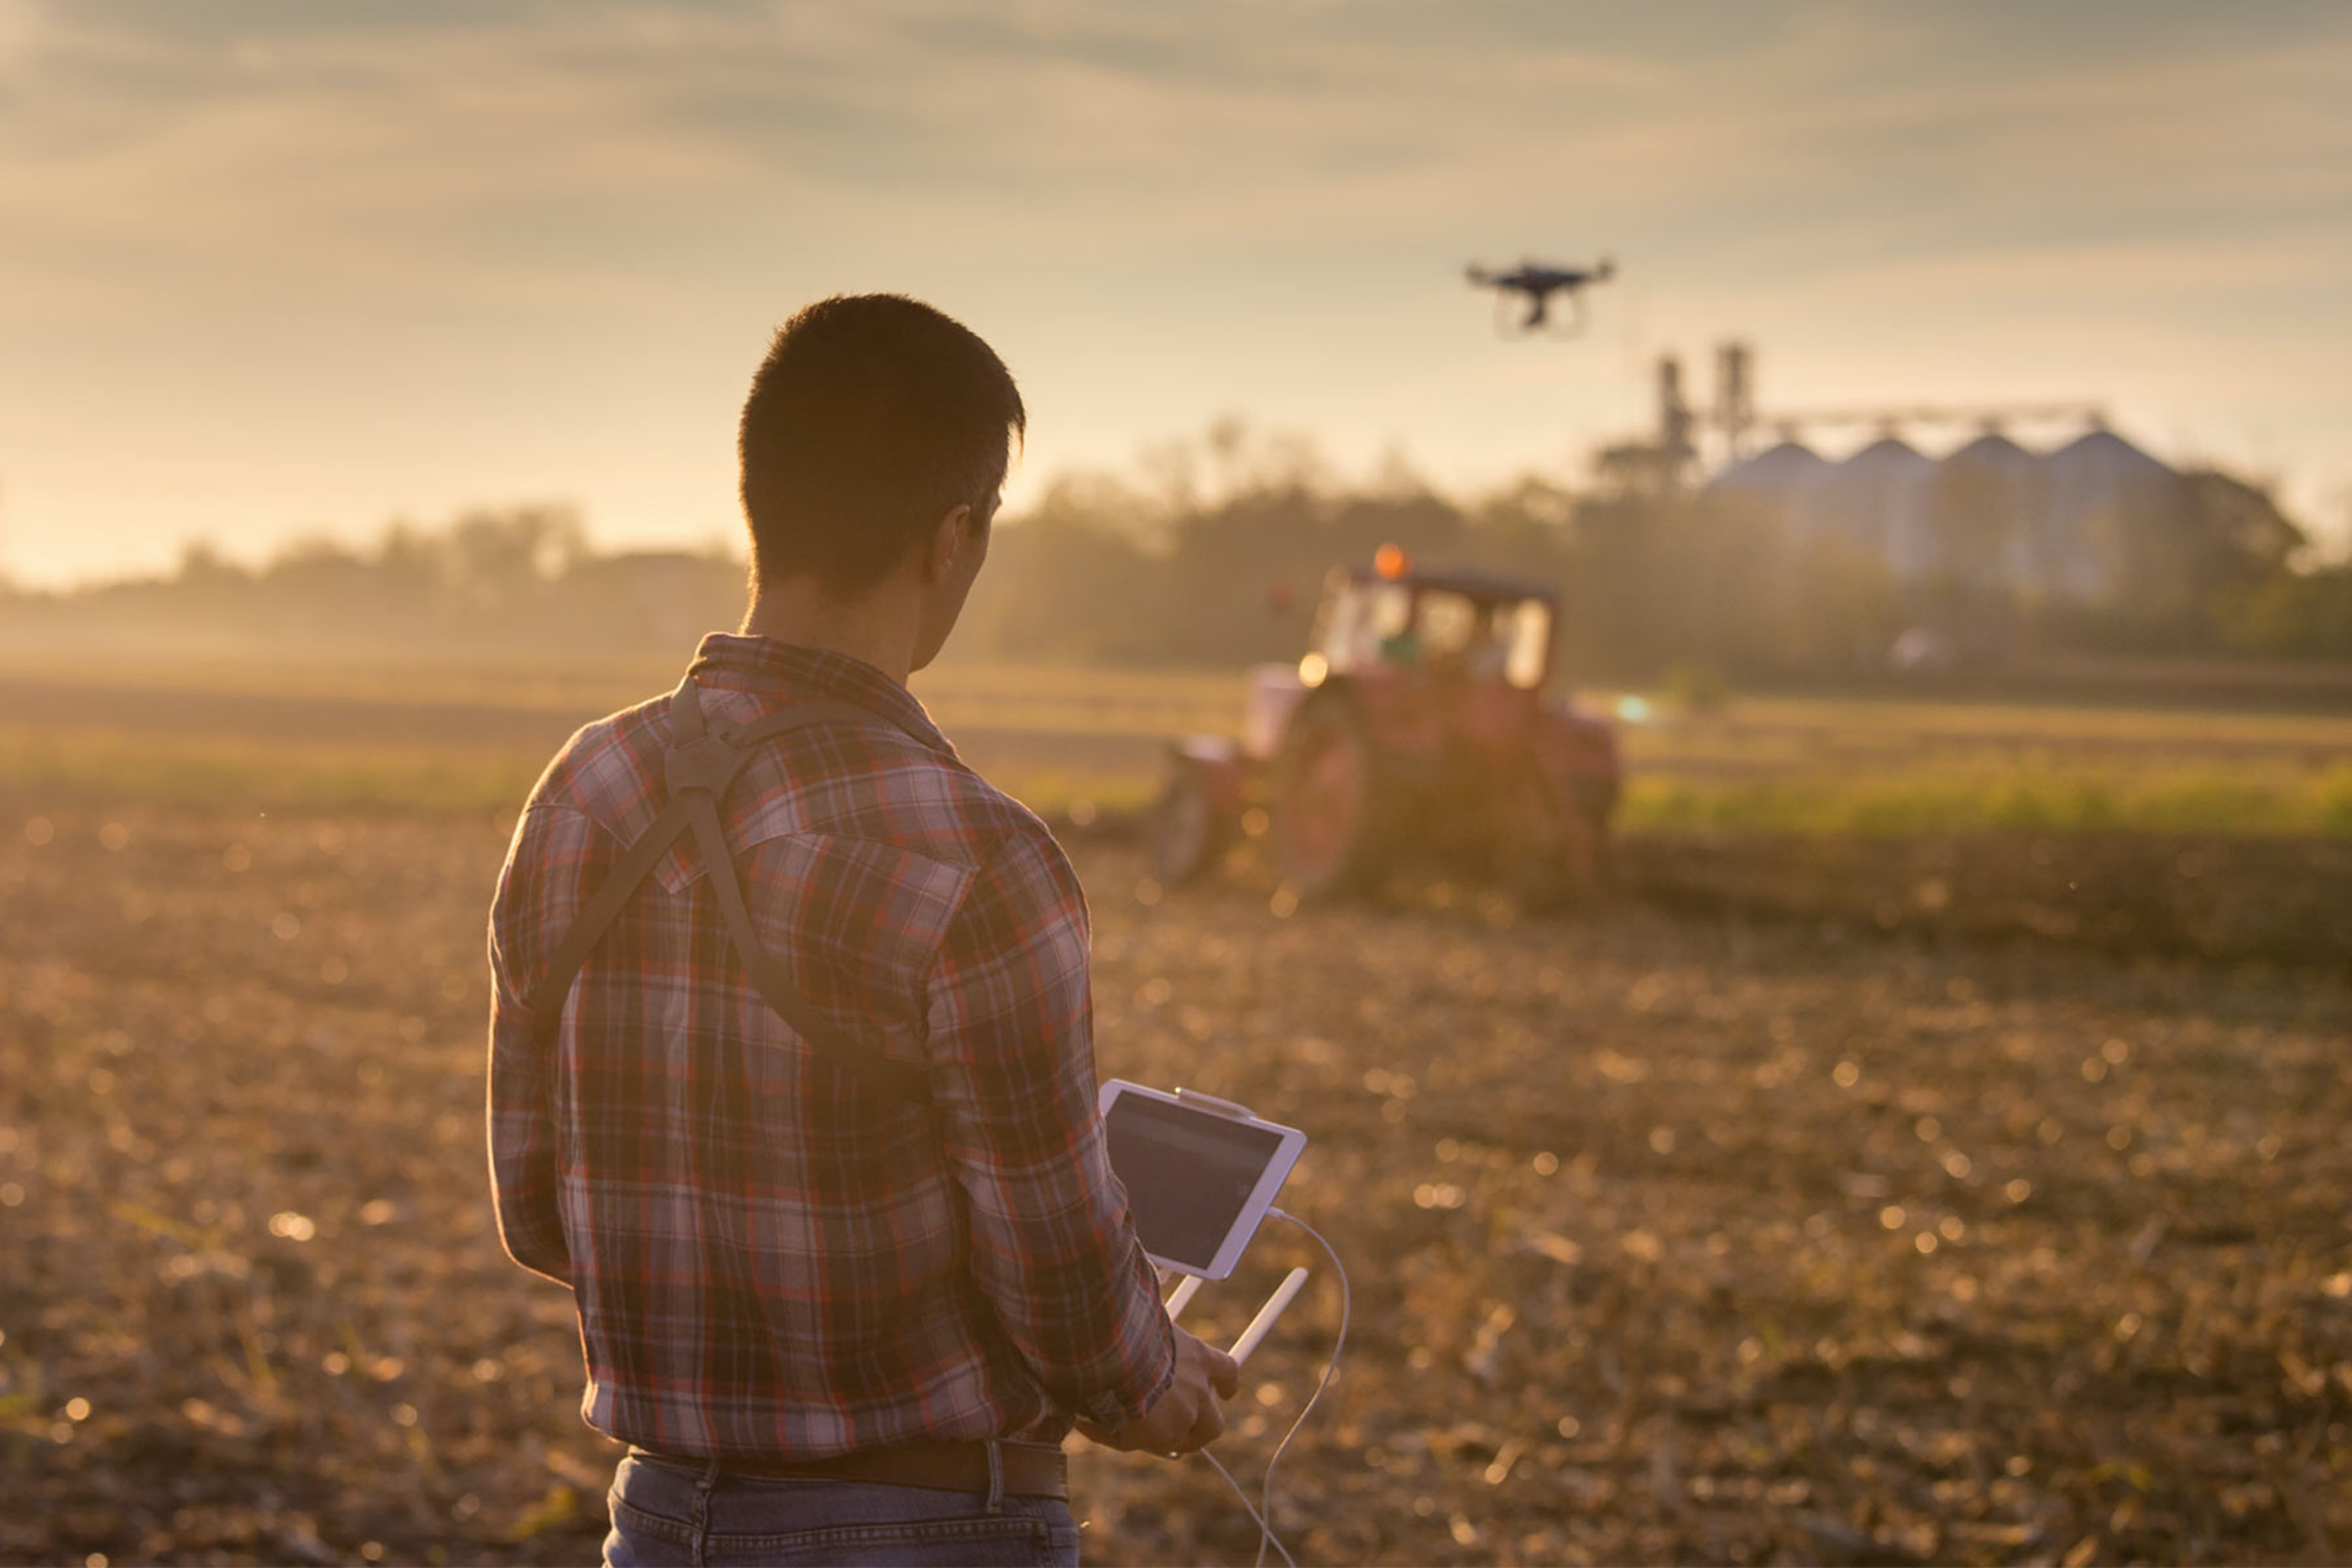 man using drone in field with crops